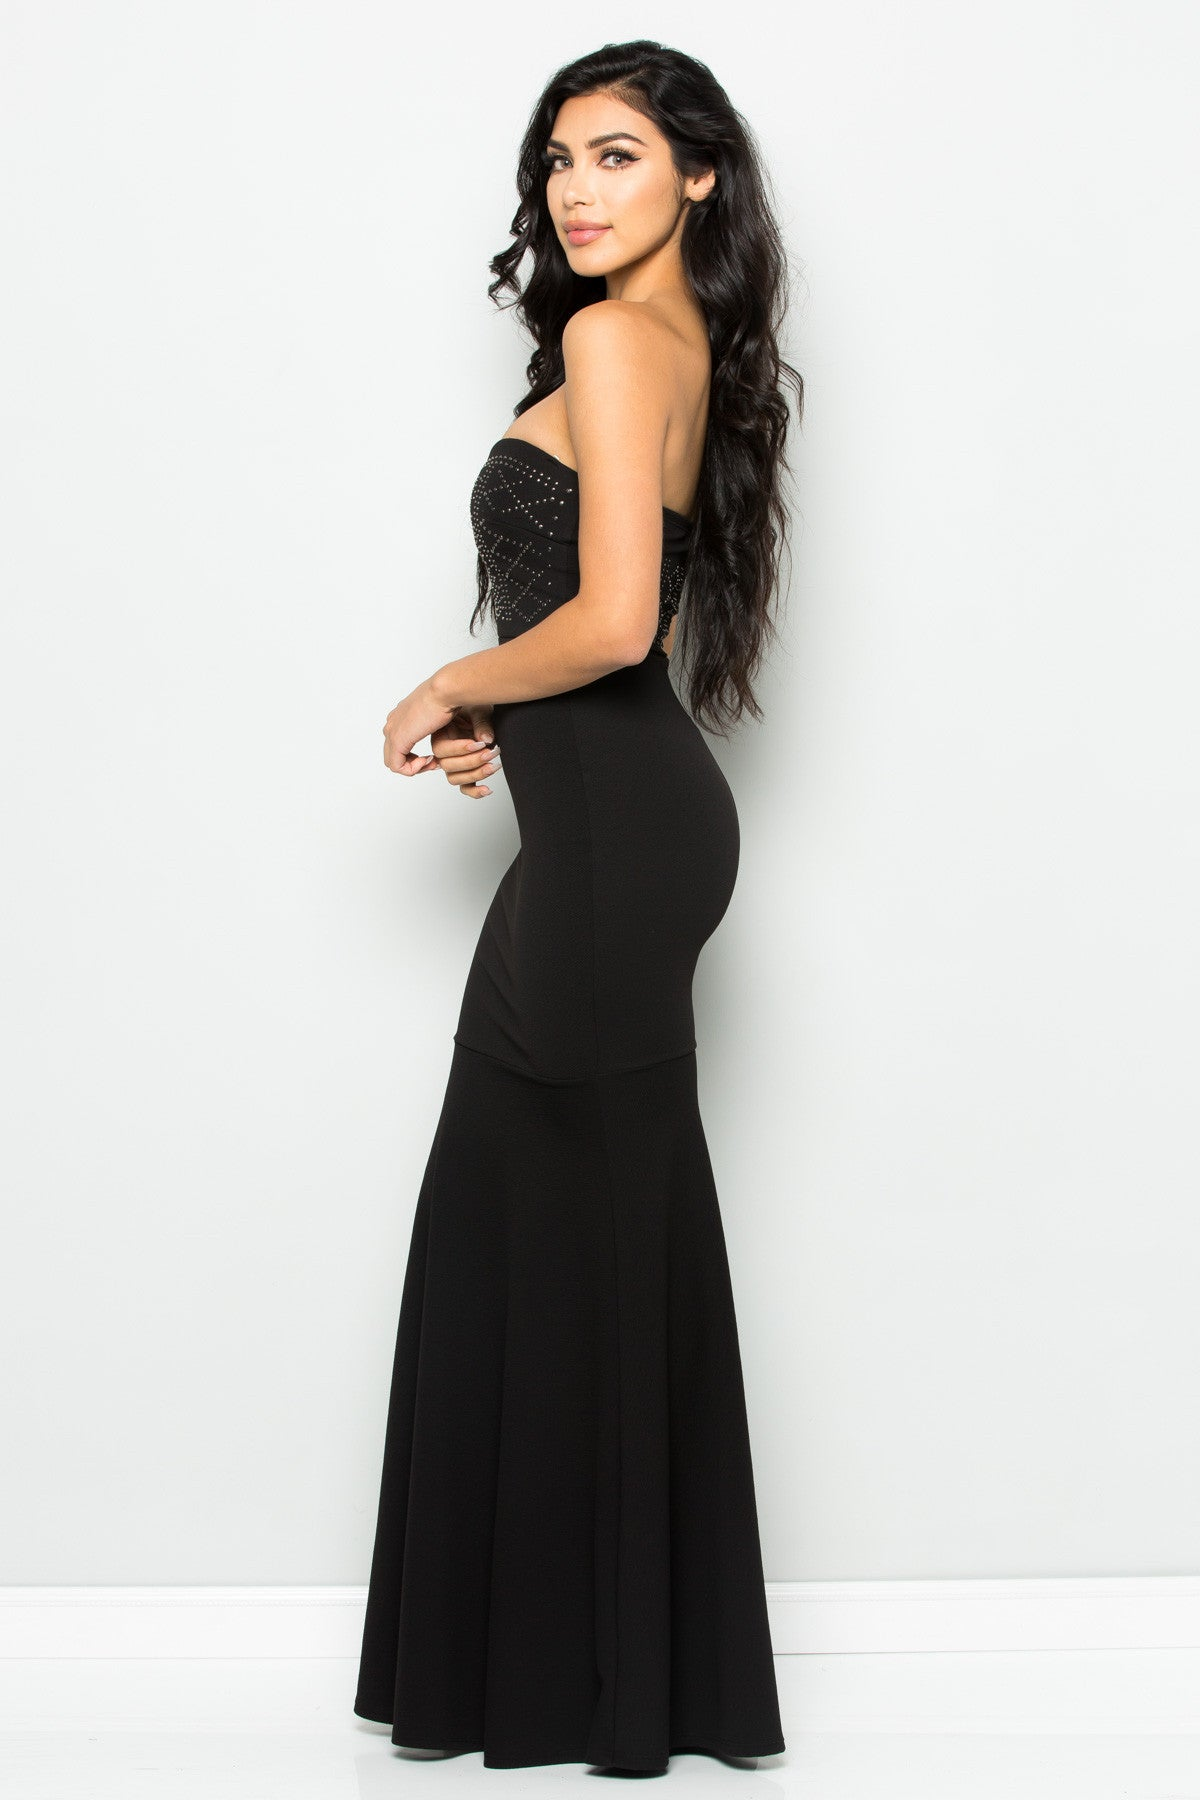 Beaded Sweetheart Mermaid Tail Gown in Black - Dresses - My Yuccie - 3